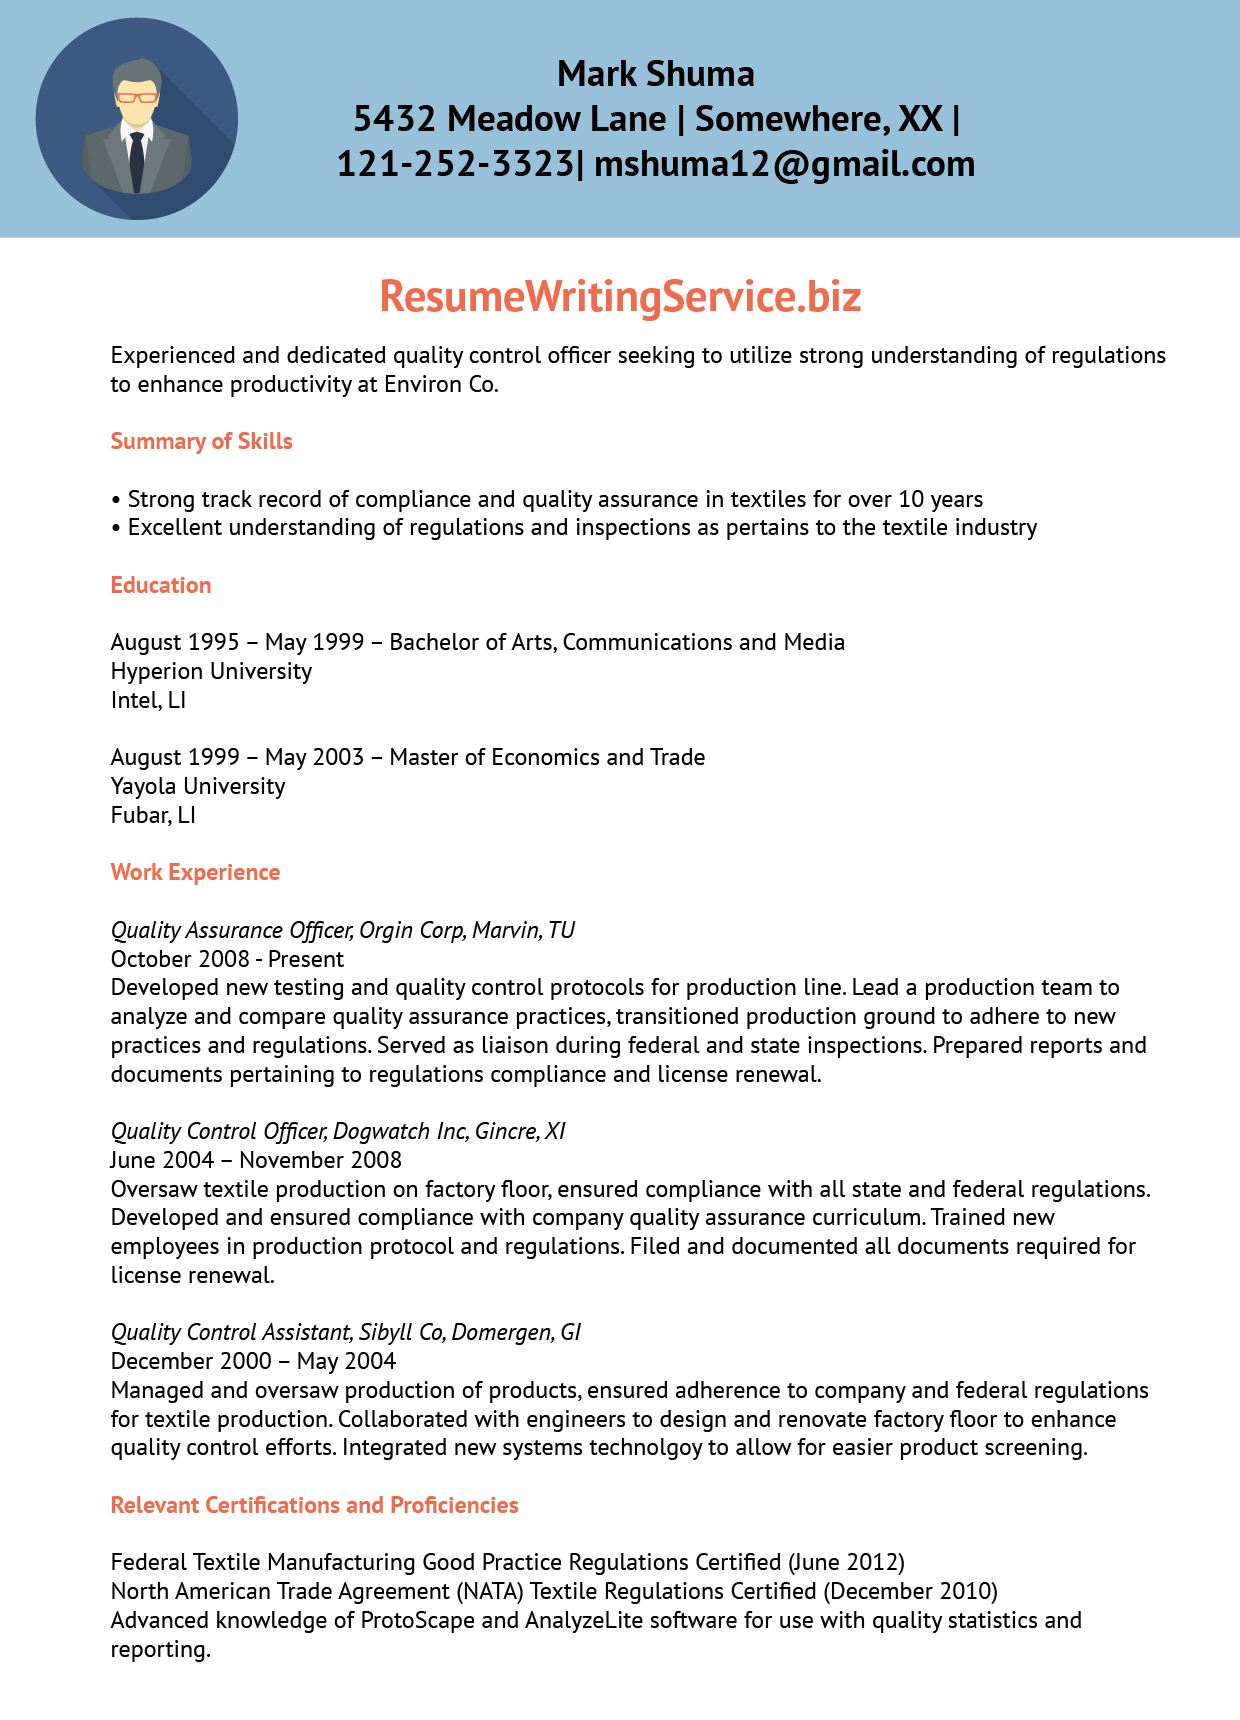 Quality Control Resume Samples 25.07.2017